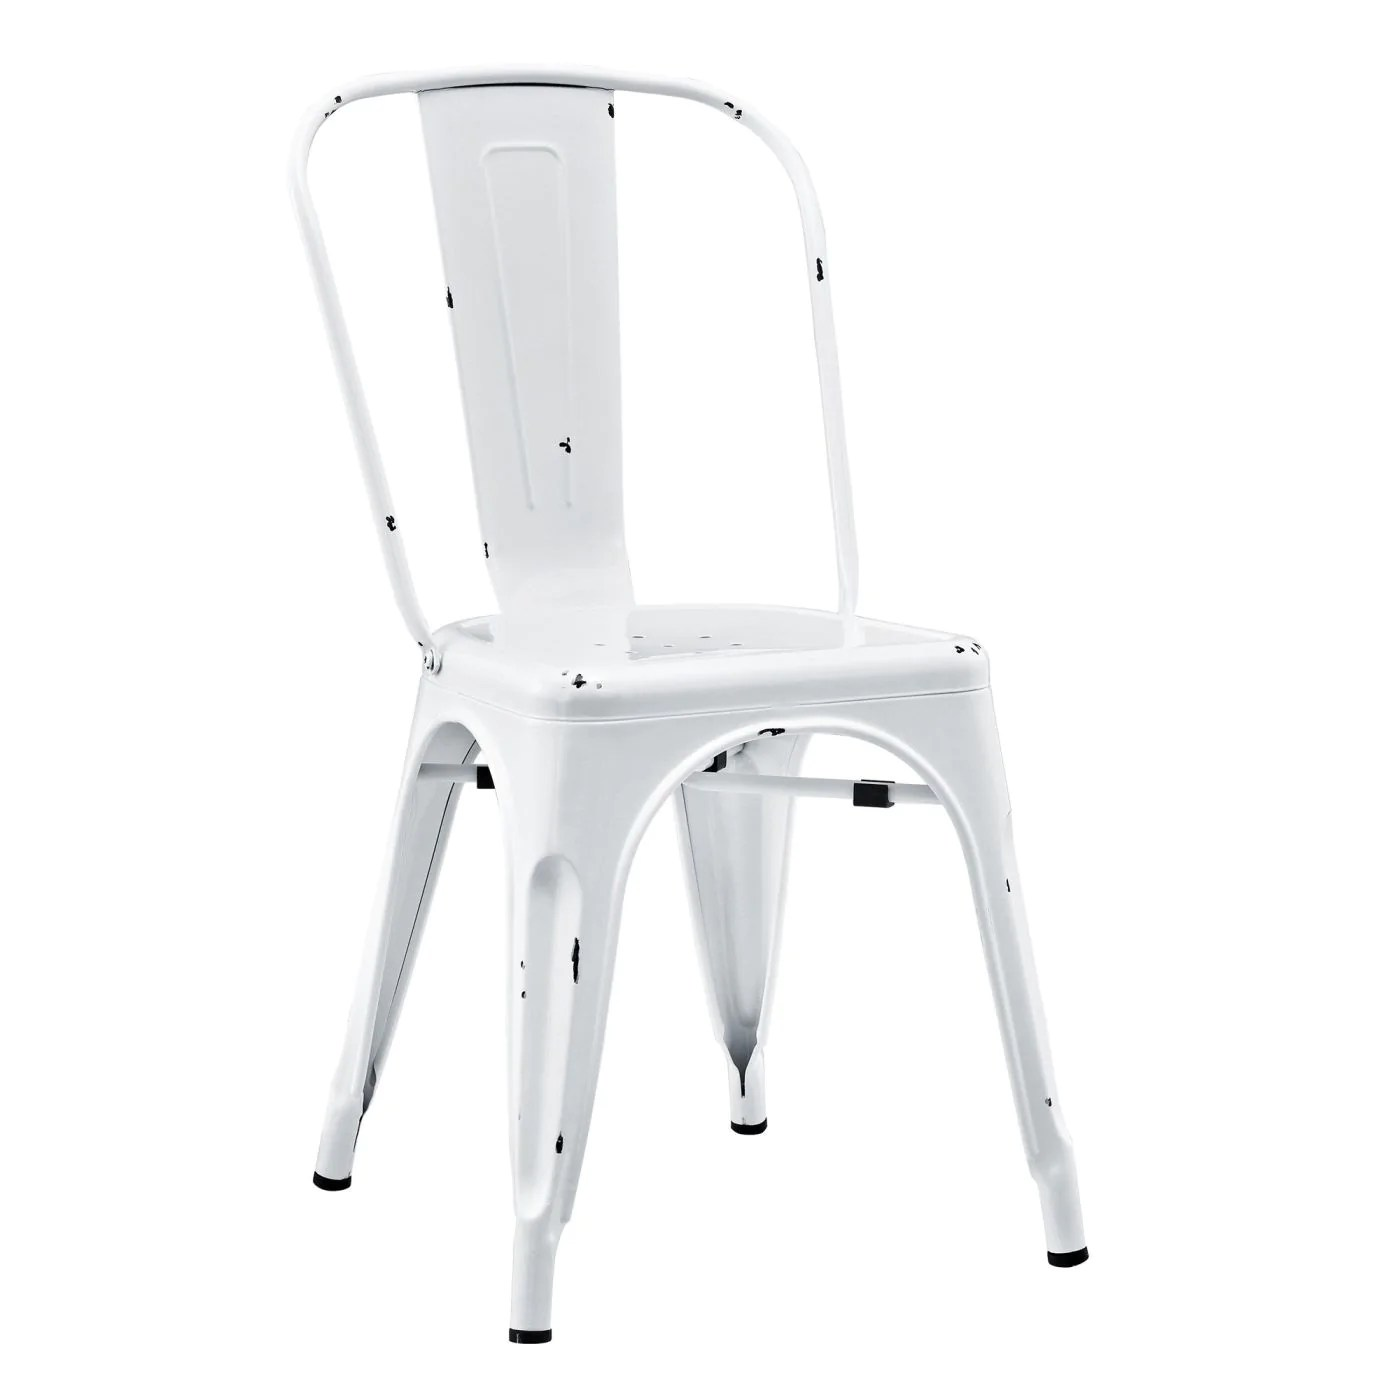 Antique White Dining Chairs Buy Walker Edison Ch33mcwh Metal Cafe Chair Antique White At Contemporary Furniture Warehouse